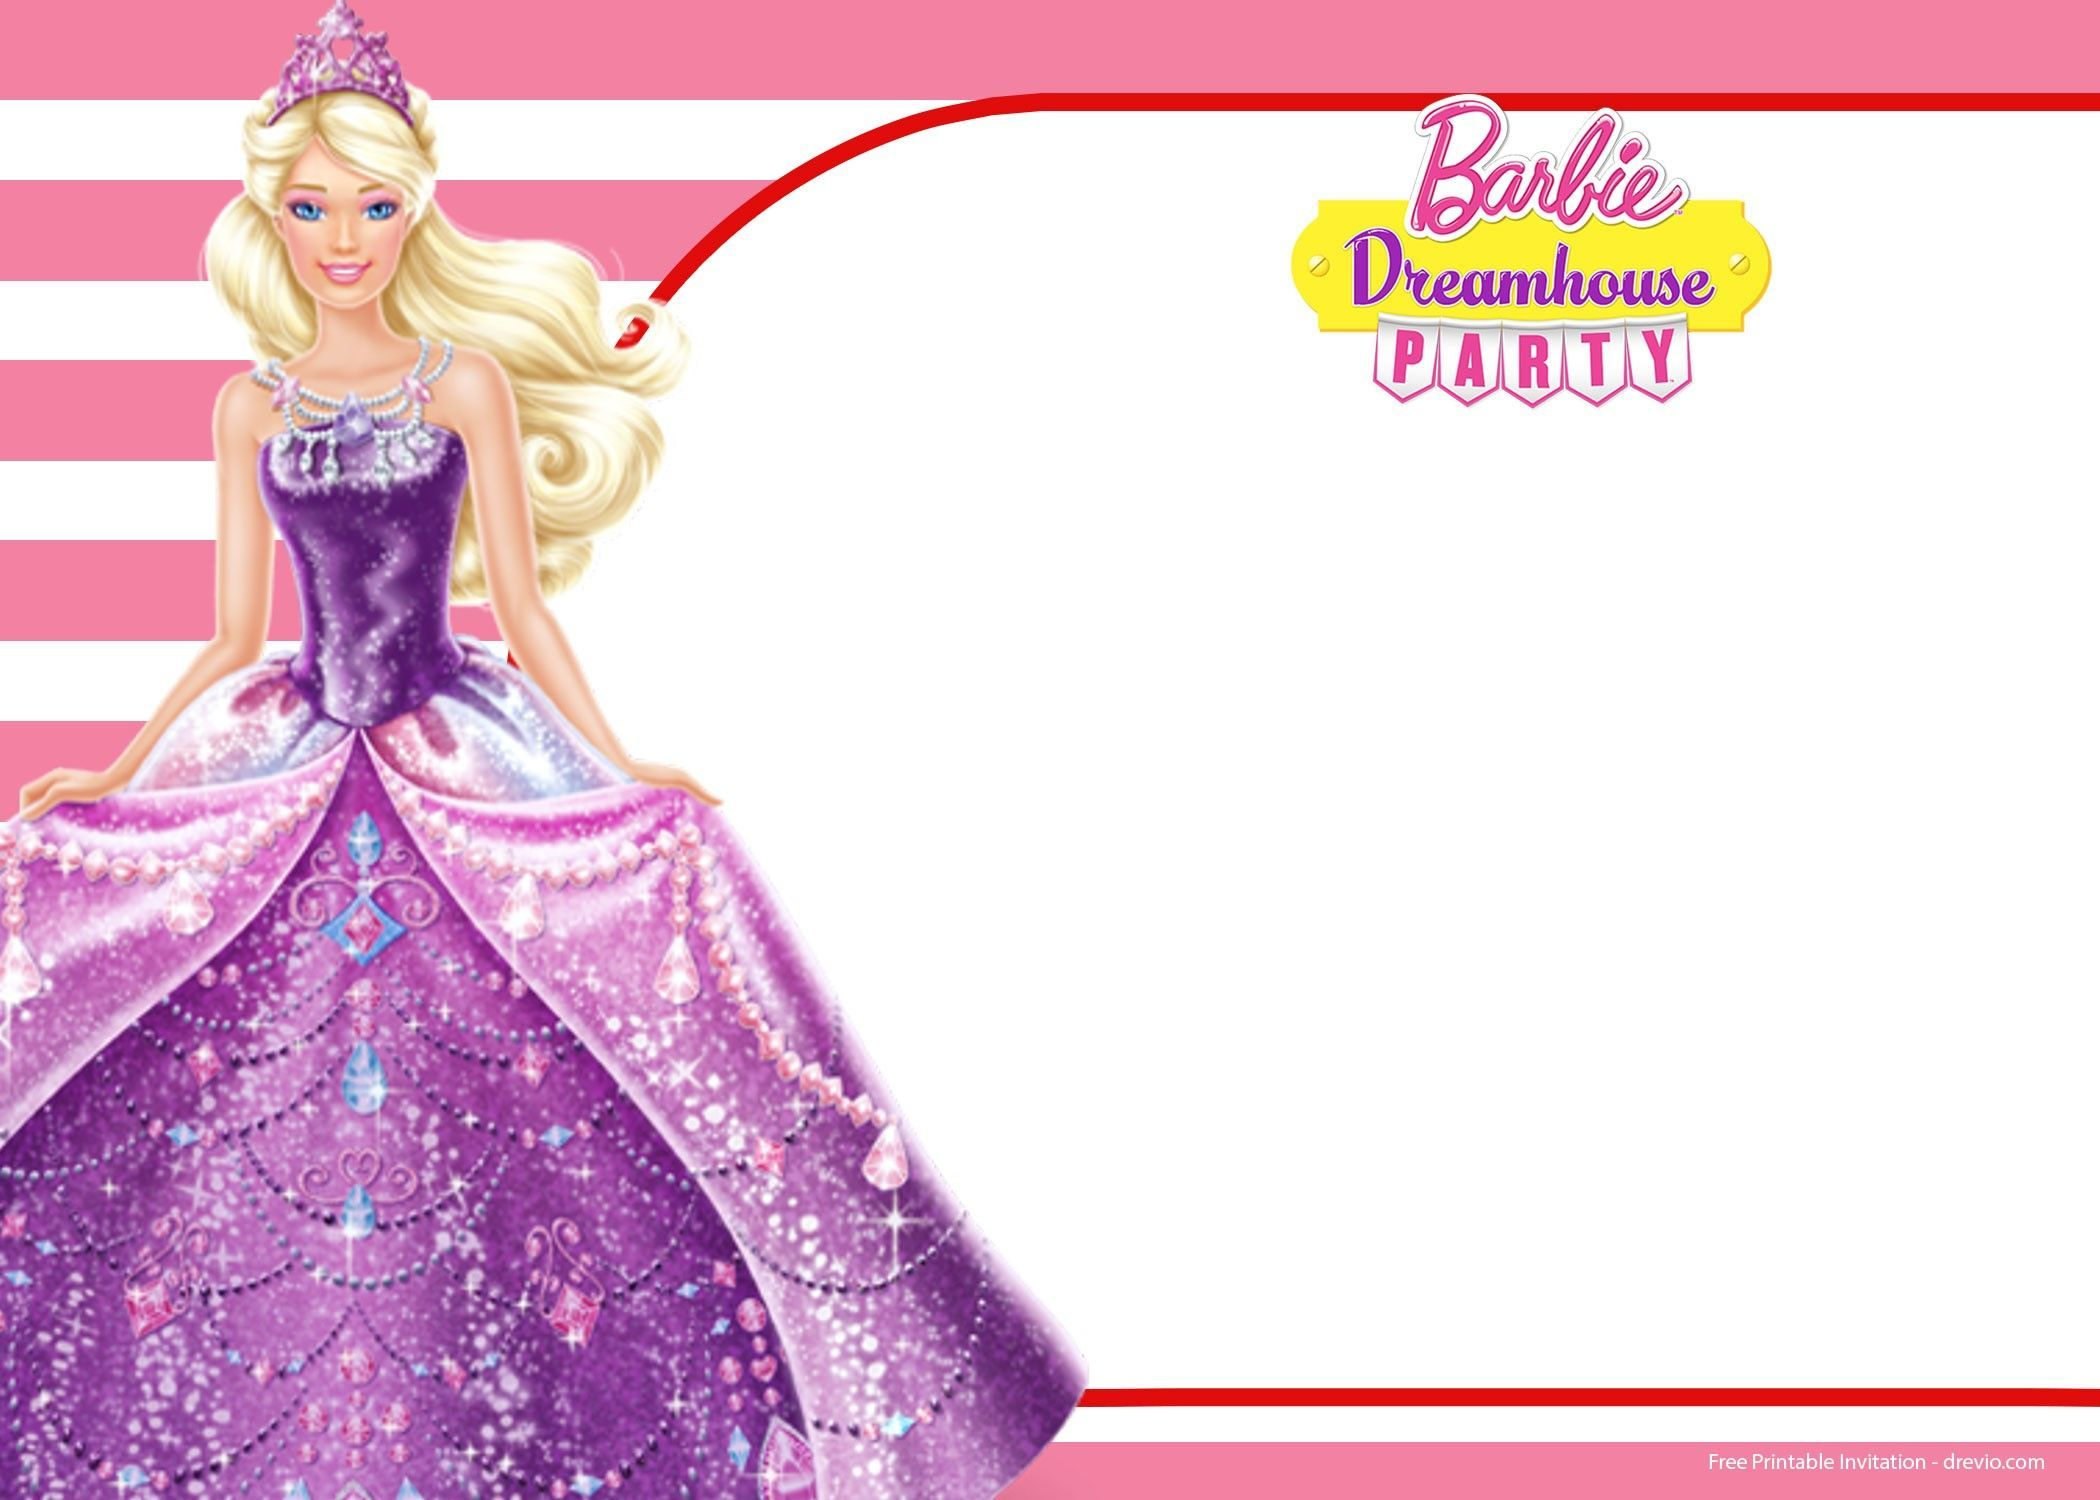 Barbie Invitation Blank  Barbie invitations, Free barbie, Barbie